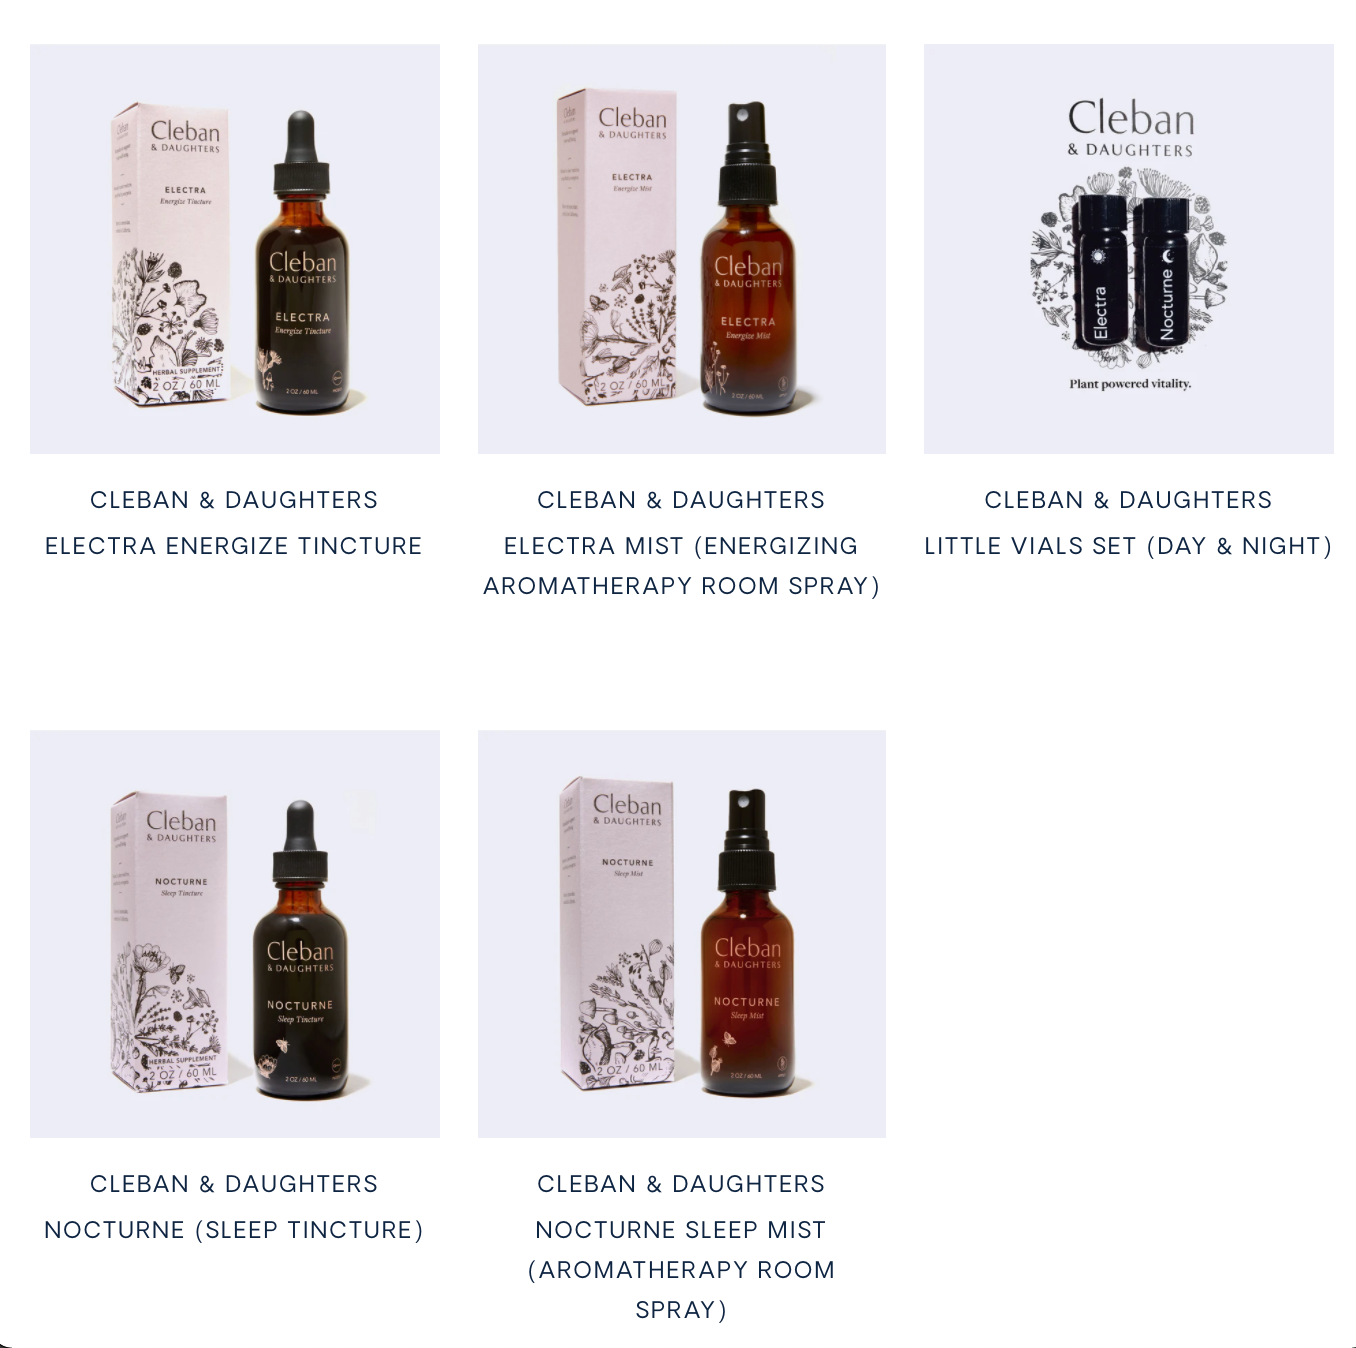 Cleban & Daughters Sleep and Stress Support Products